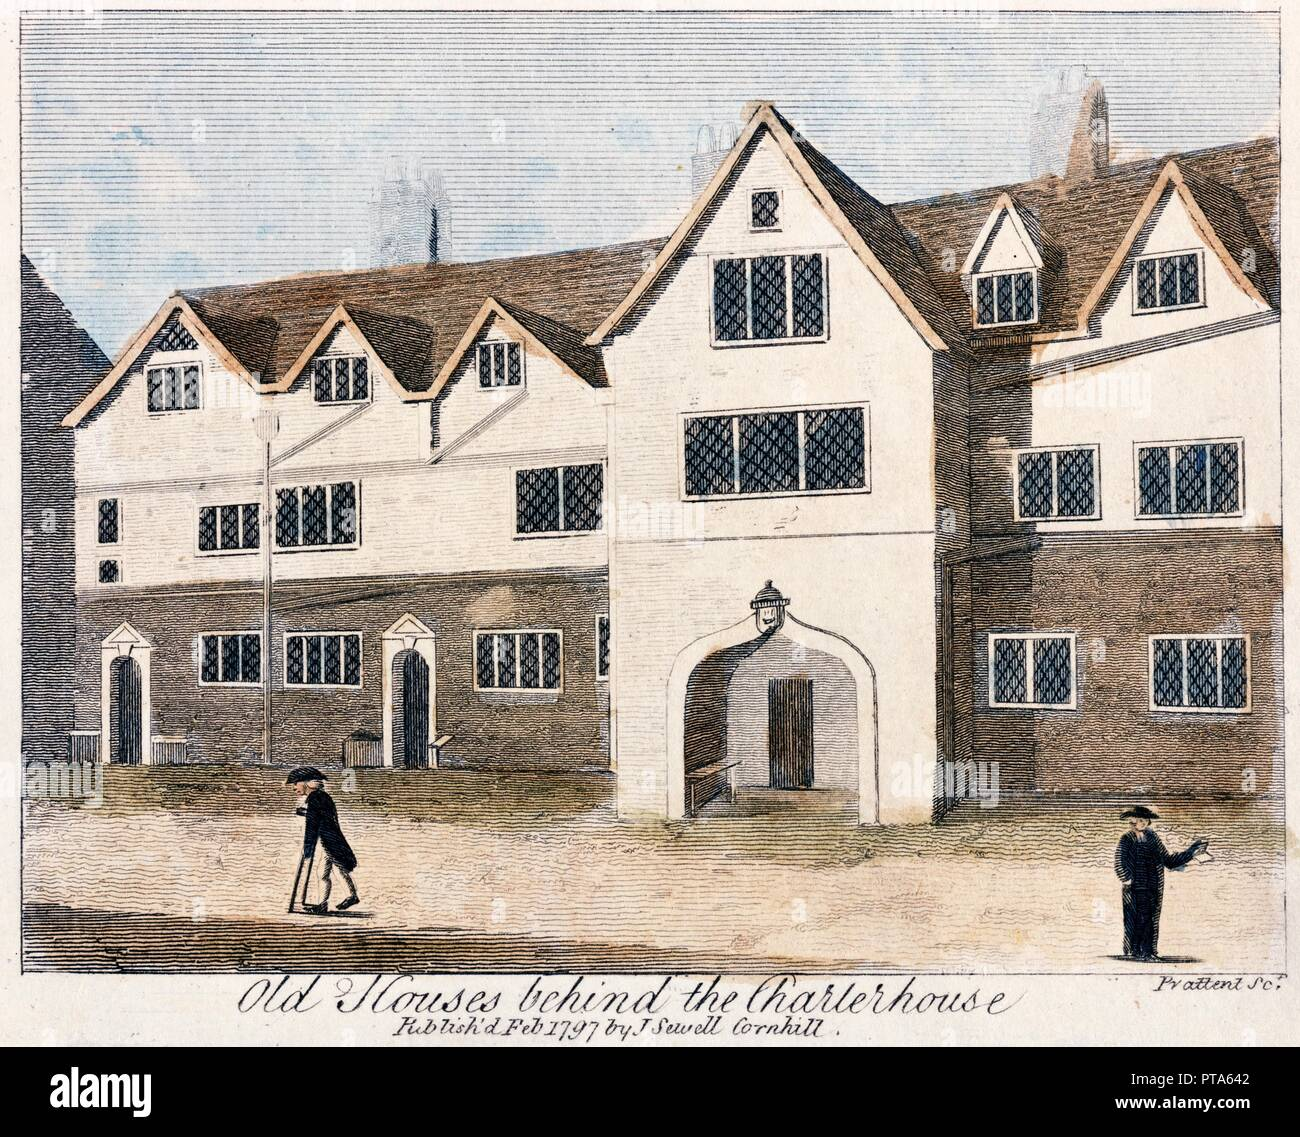 Houses behind the Charterhouse Hospital, London, 1797. 'Old Houses behind the Charterhouse'. Print from the Mayson Beeton Collection. - Stock Image